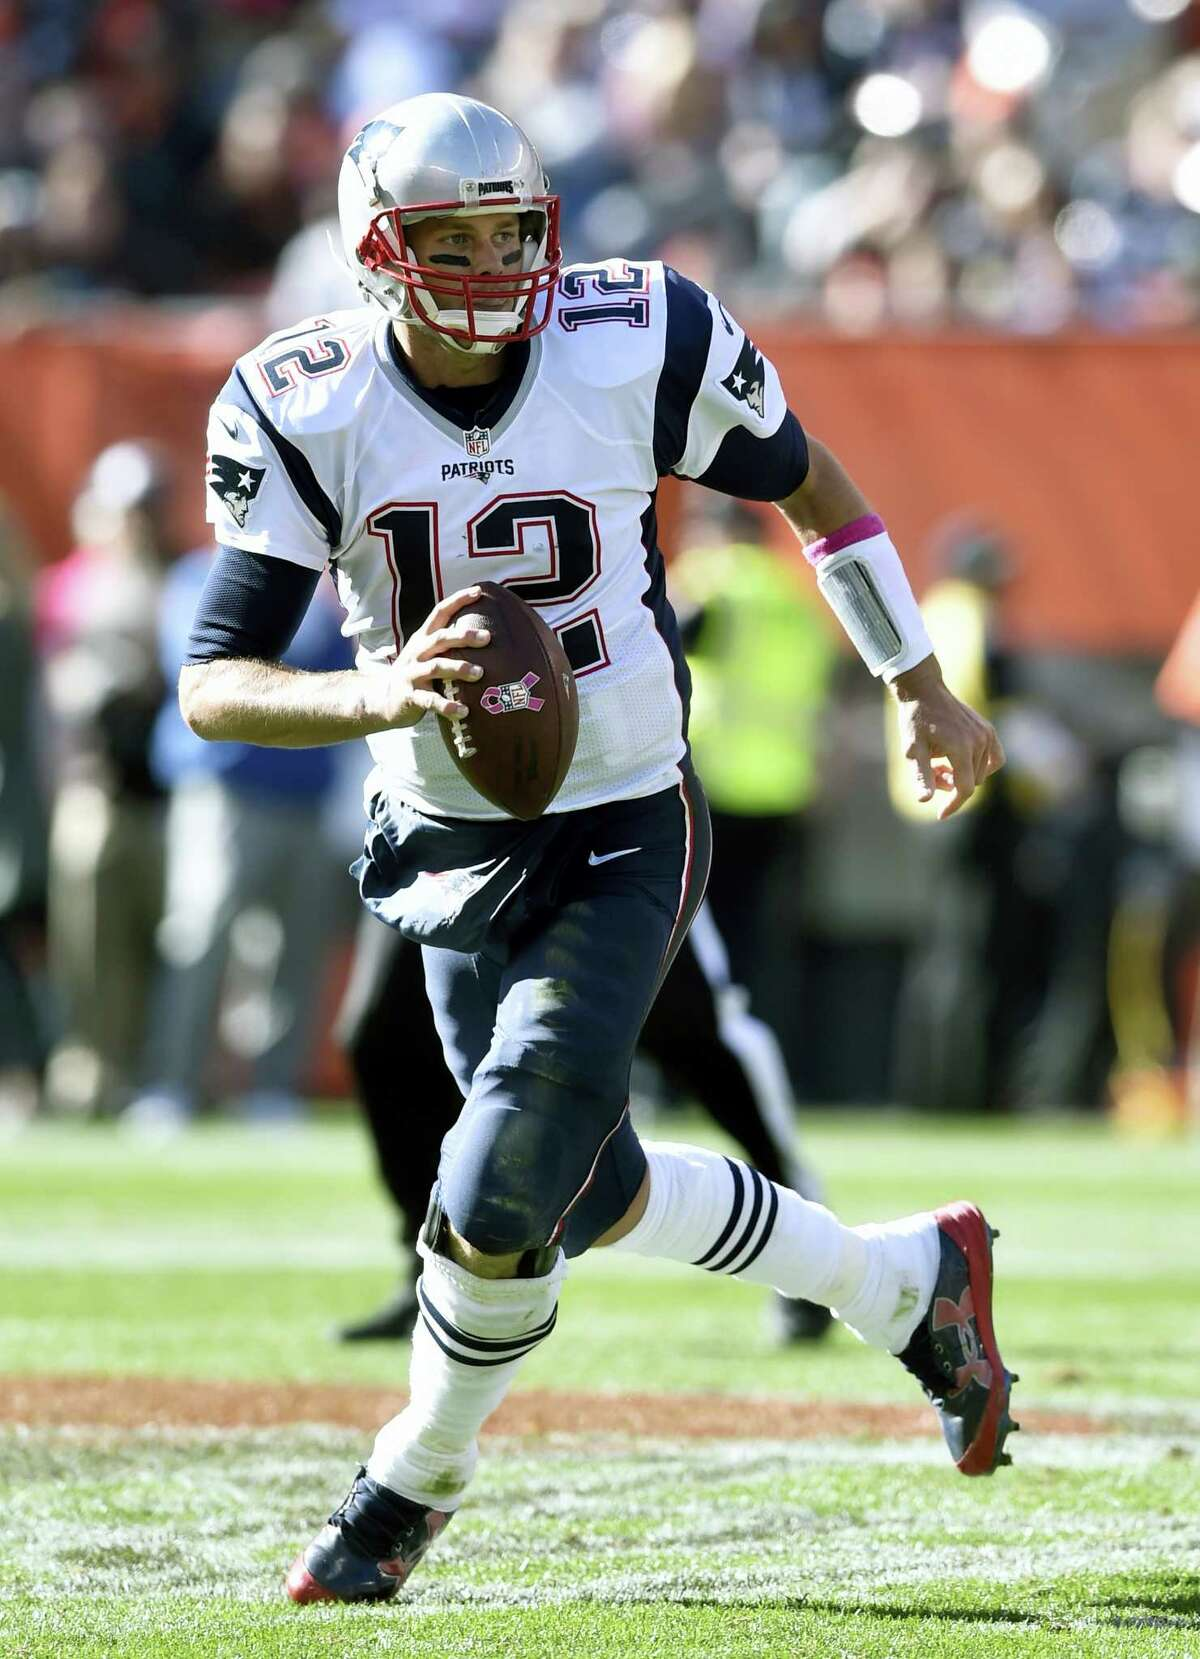 One of the prop bets for this year's Super Bowl asks who will score more points on Sunday — the Patriots offense led by Tom Brady or the Celtics' Isaiah Thomas.